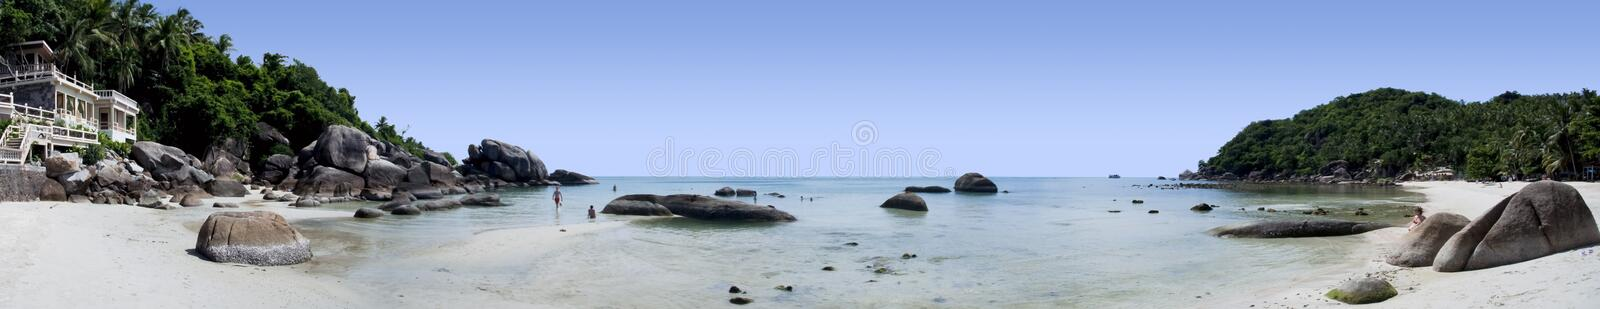 Koh samui island beach resort panorama thailand royalty free stock photography